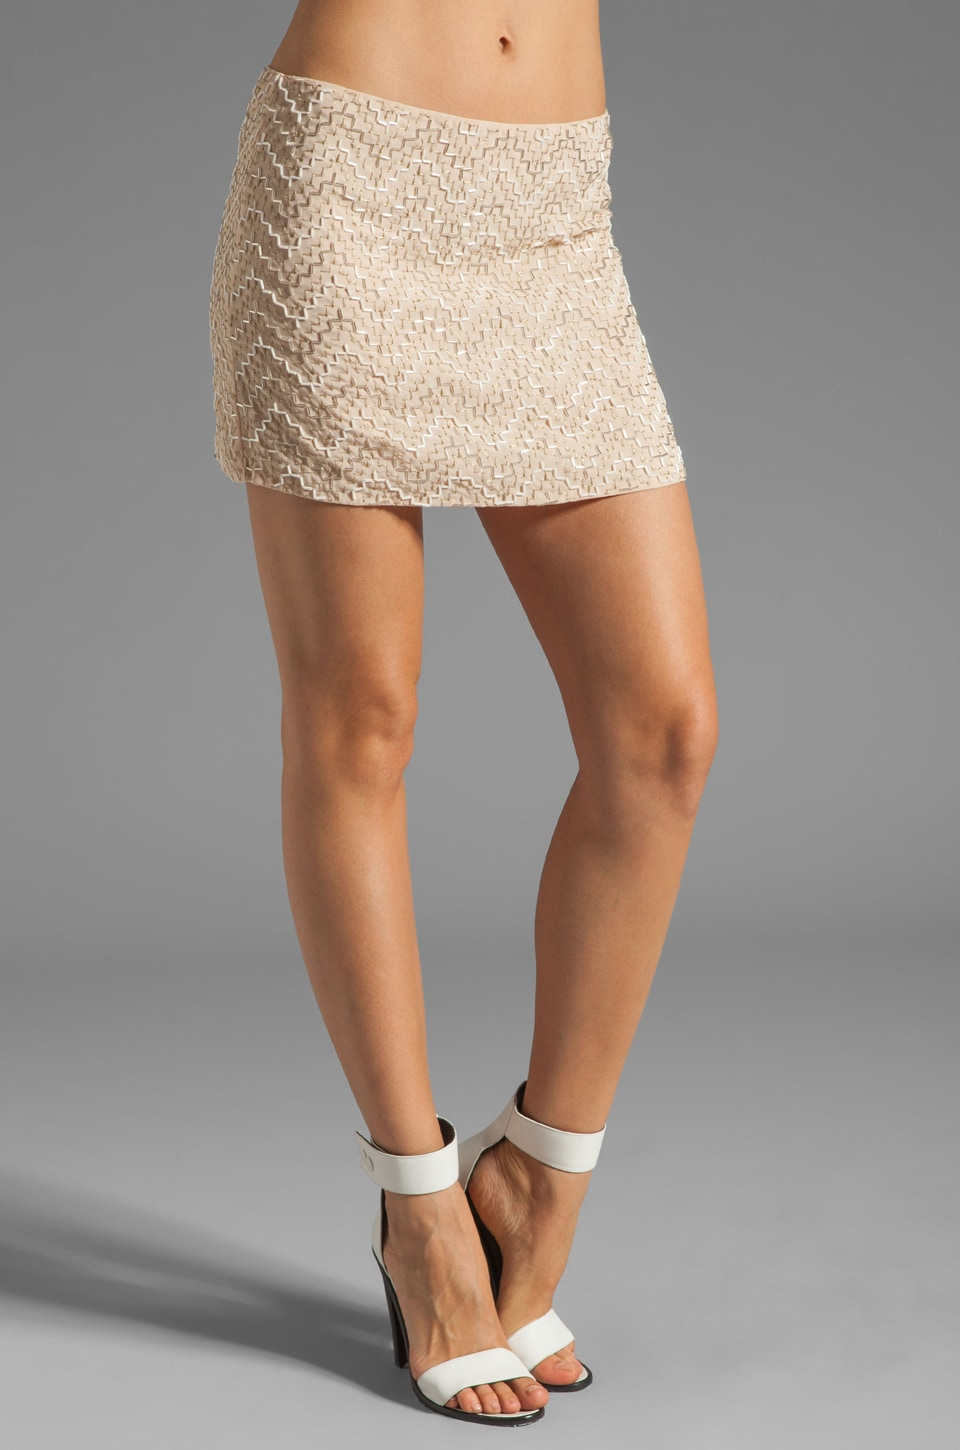 Parker Layla Sequin Pyramid Skirt in in Nude